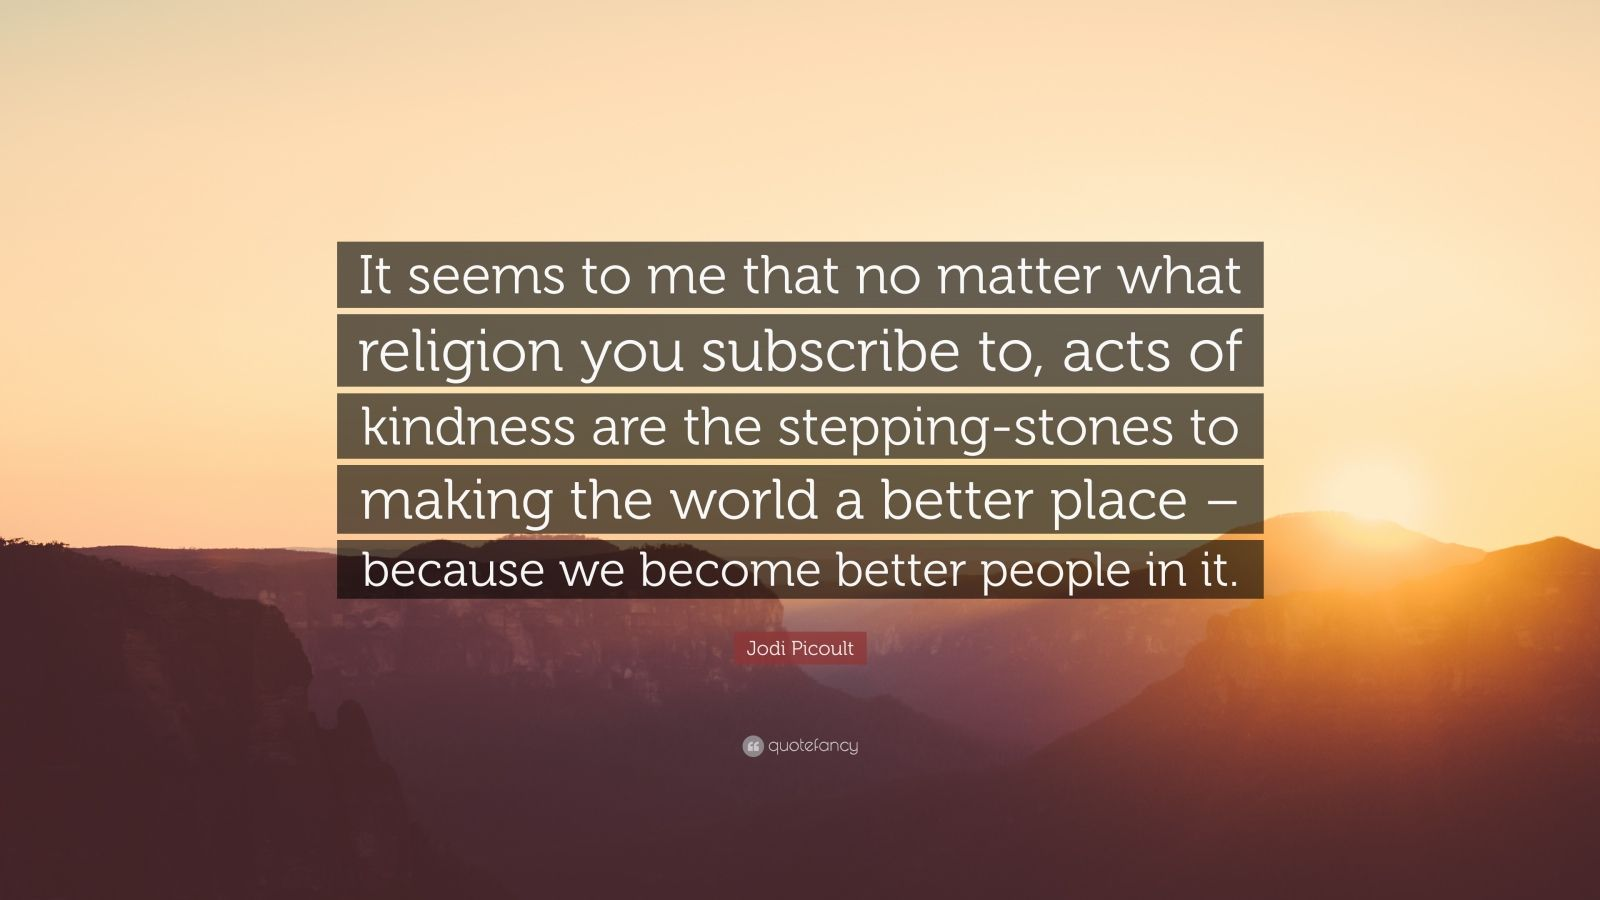 """Jodi Picoult Quote: """"It seems to me that no matter what religion you subscribe to, acts of kindness are the stepping-stones to making the world a better place – because we become better people in it."""""""